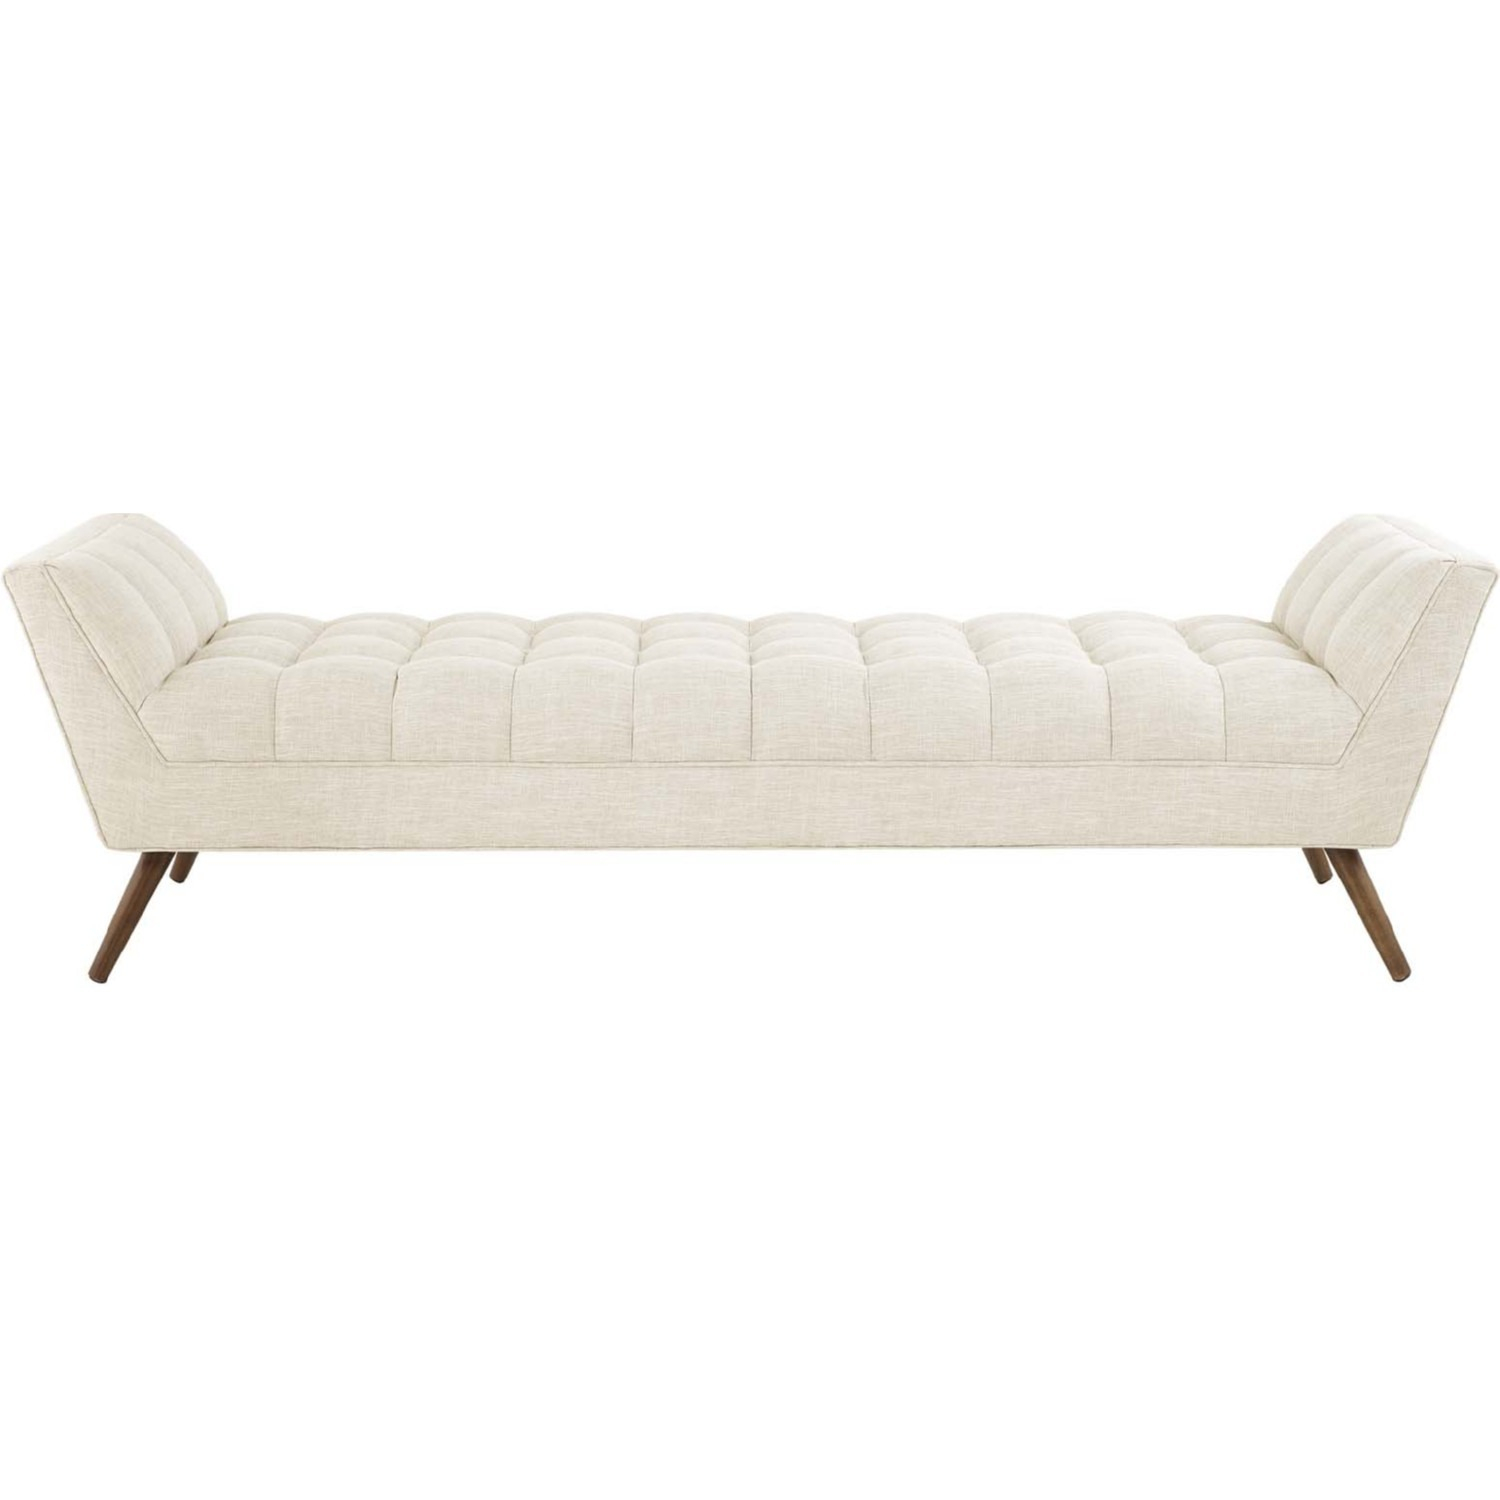 Bench In Beige Fabric Upholstery W/ Wood Legs - image-1